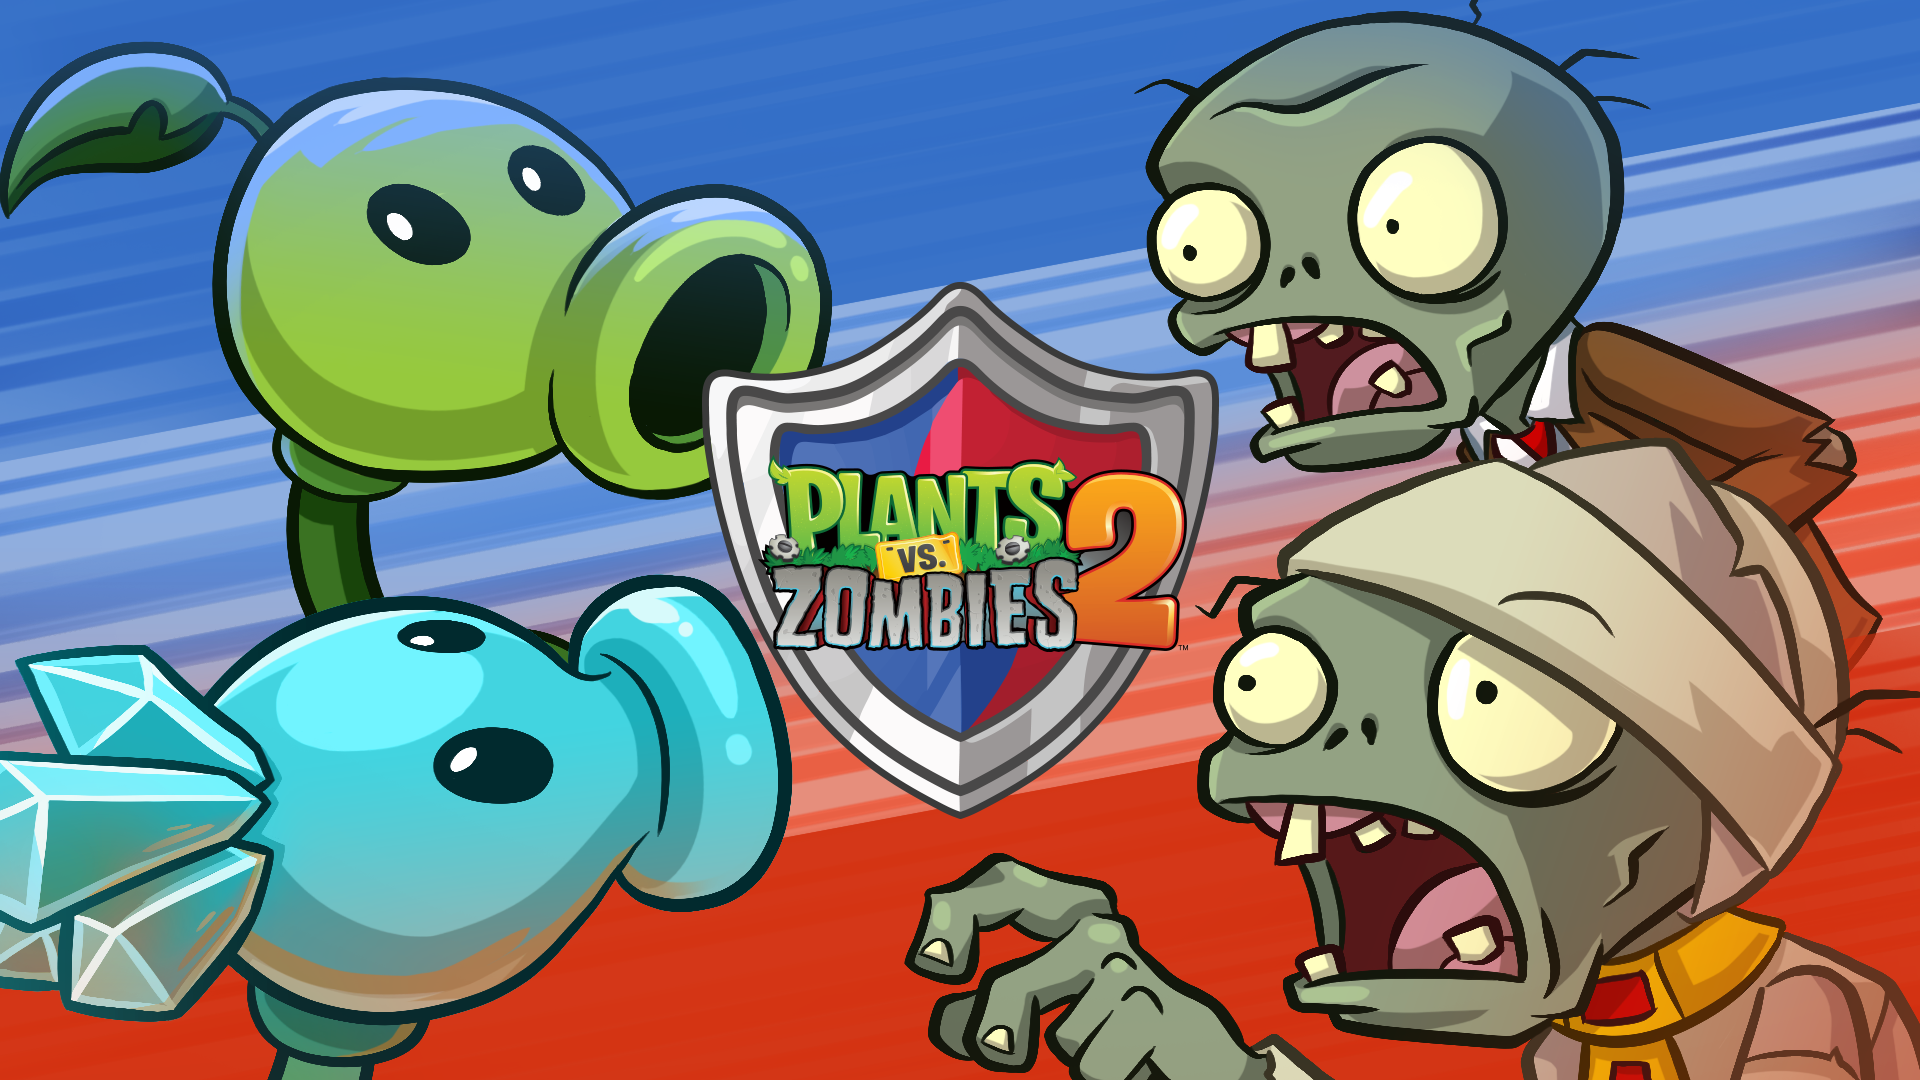 zombies 2 plants vs zombies 2